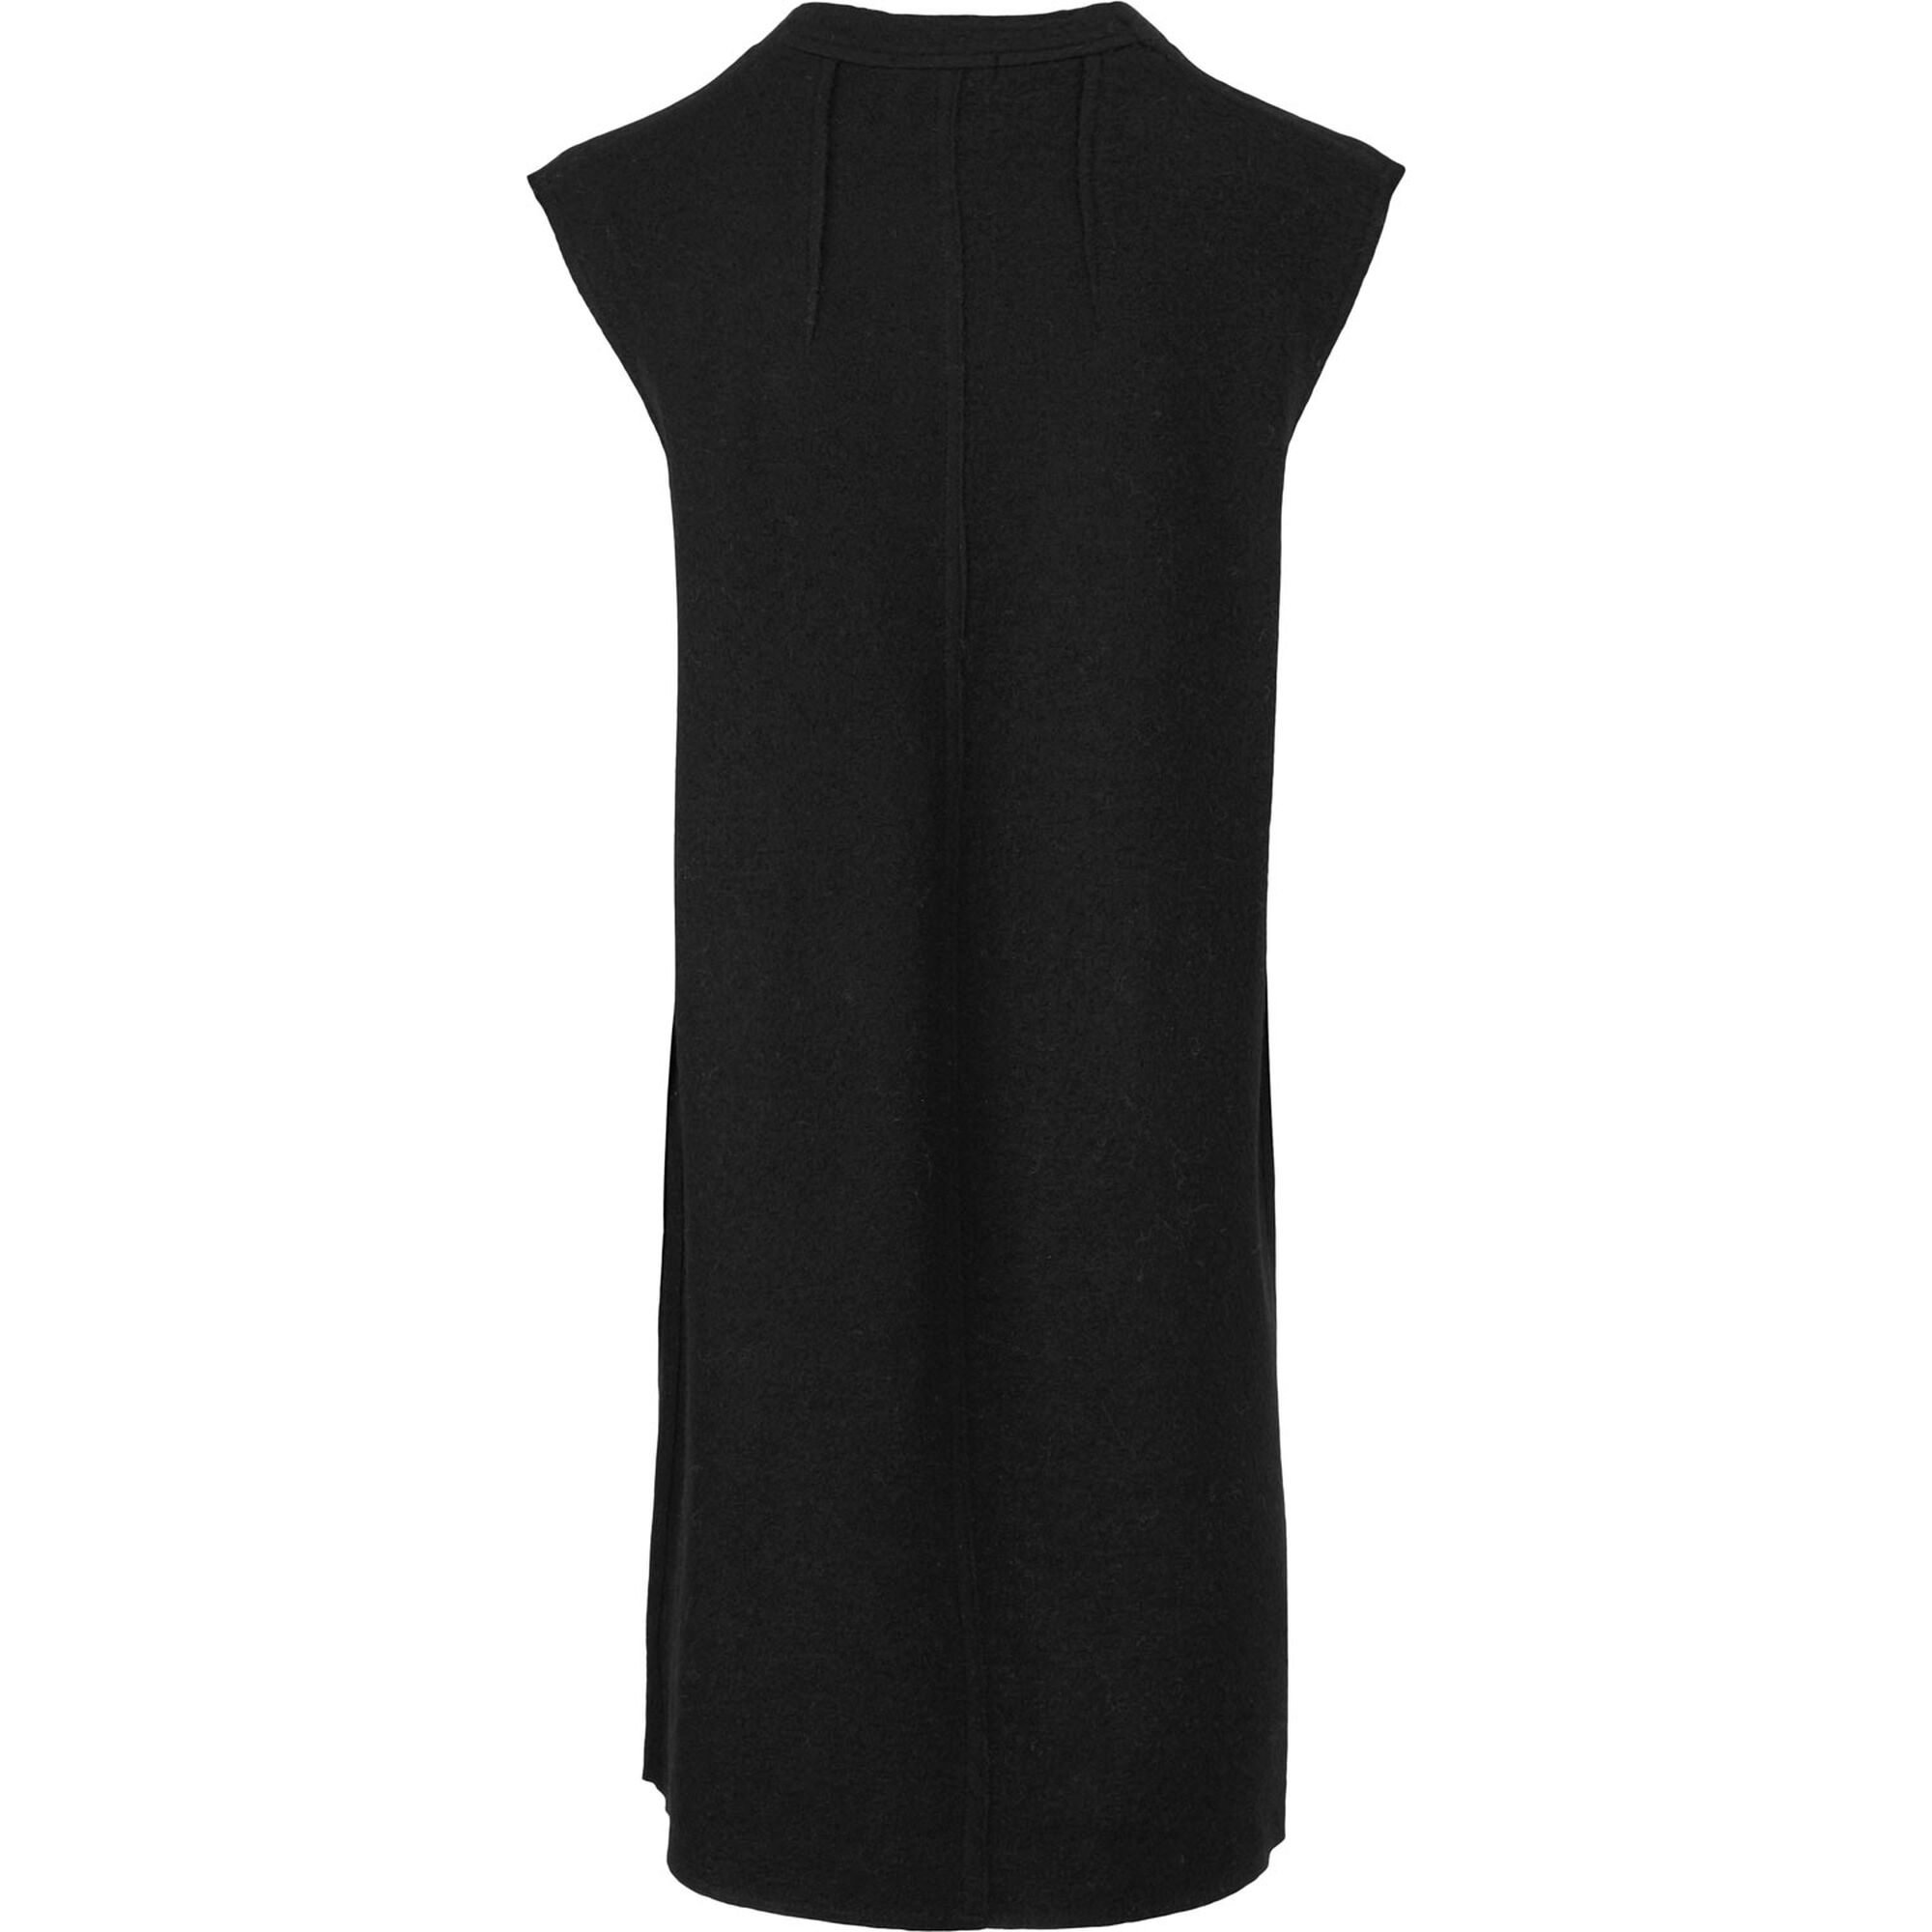 LAURINI VEST, Black, hi-res